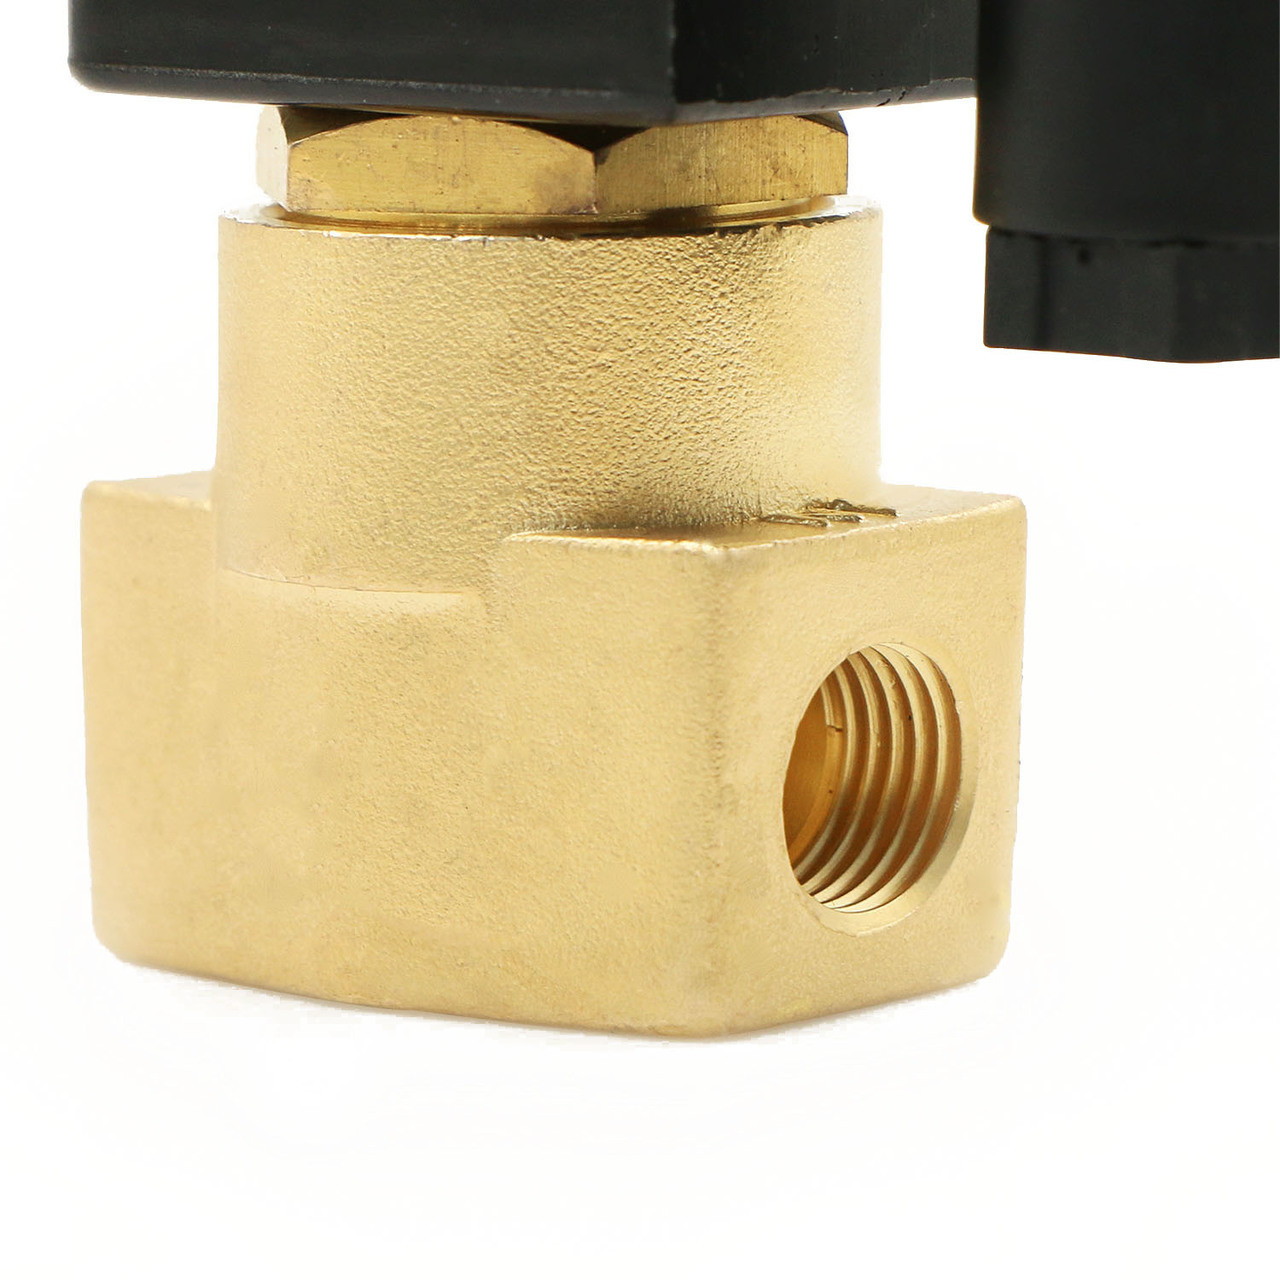 "USSOLID Electric Solenoid Valve- 1/4"" 110V AC Solenoid Valve Brass Body Normally Open, NBR SEAL"